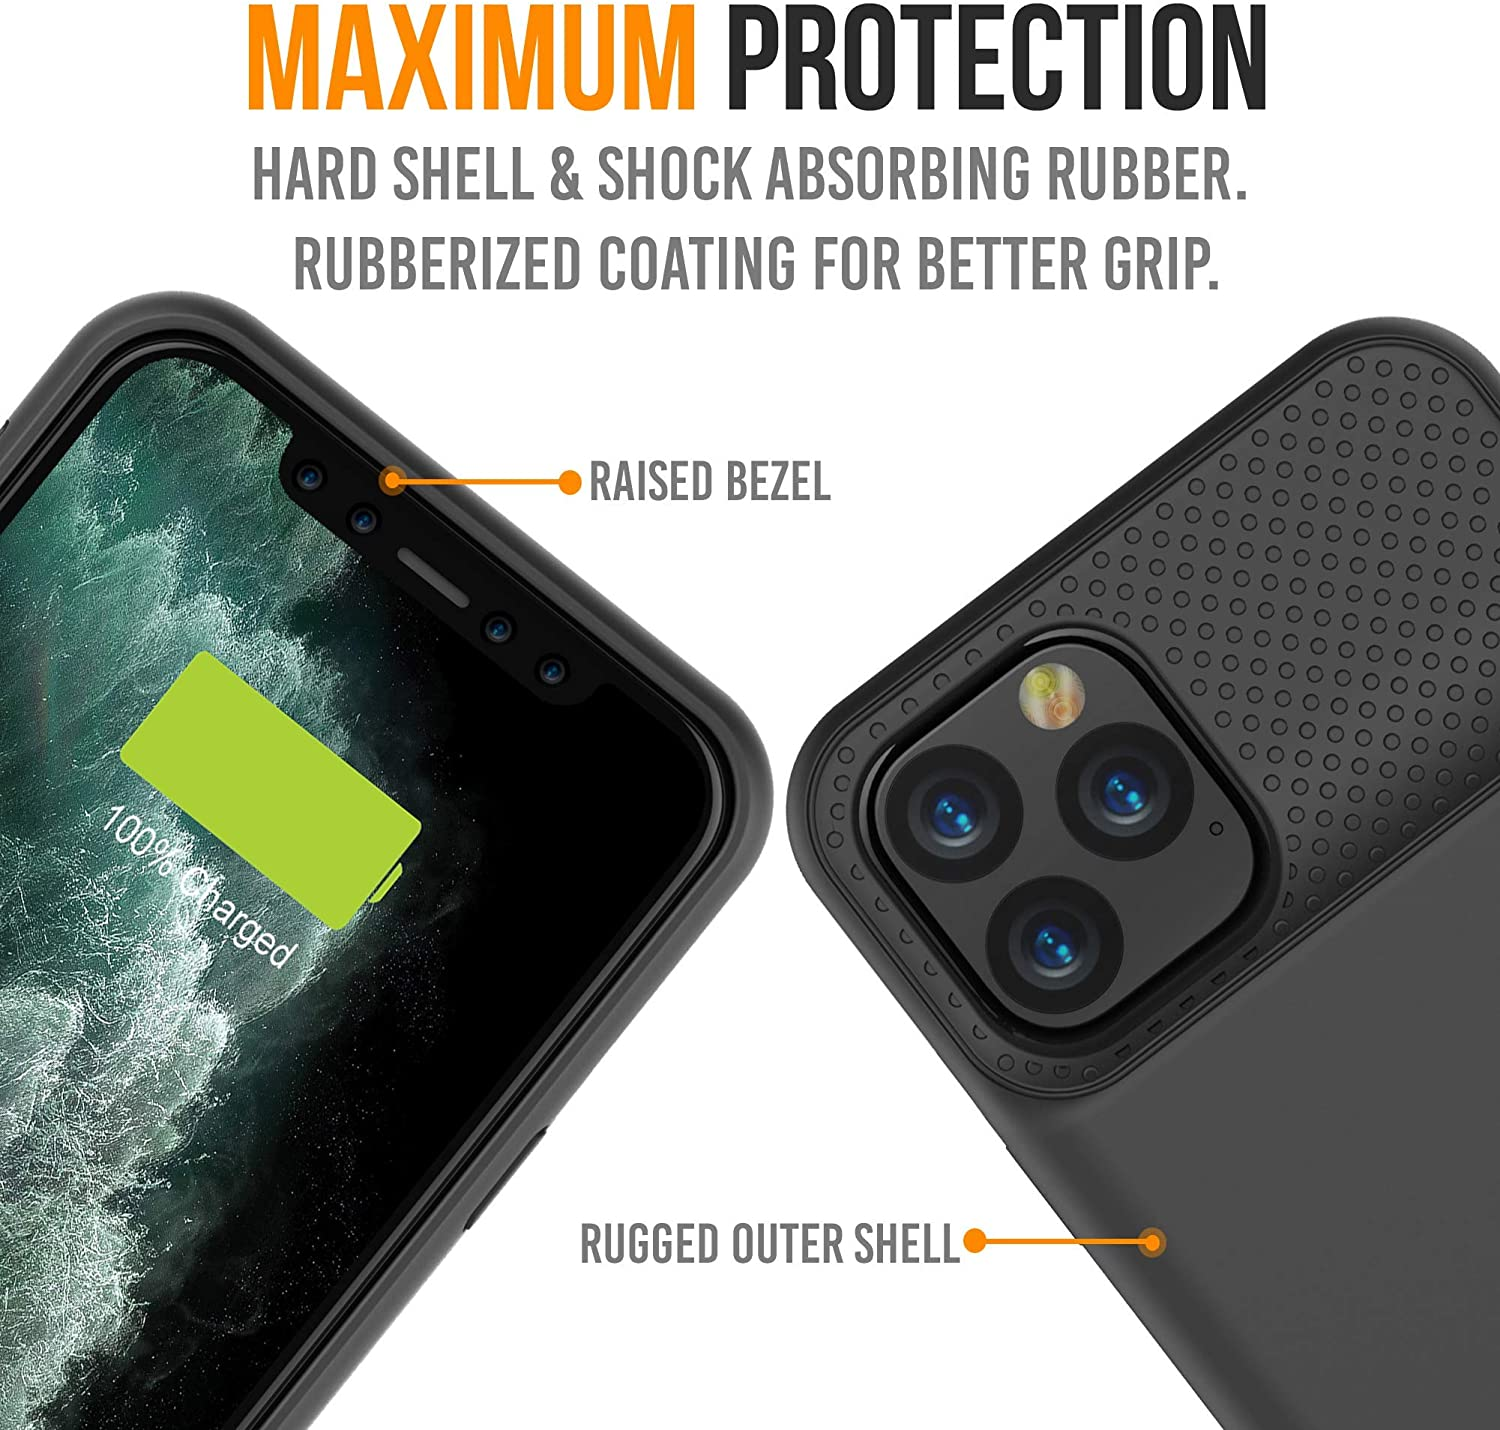 BX11 Pro Max - Battery Case for iPhone 11 Pro Max 6.5 inch 5000mAh Slim Portable Protective Extended Charger Cover with Qi Wireless Charging Compatible with Lightning Audio Black